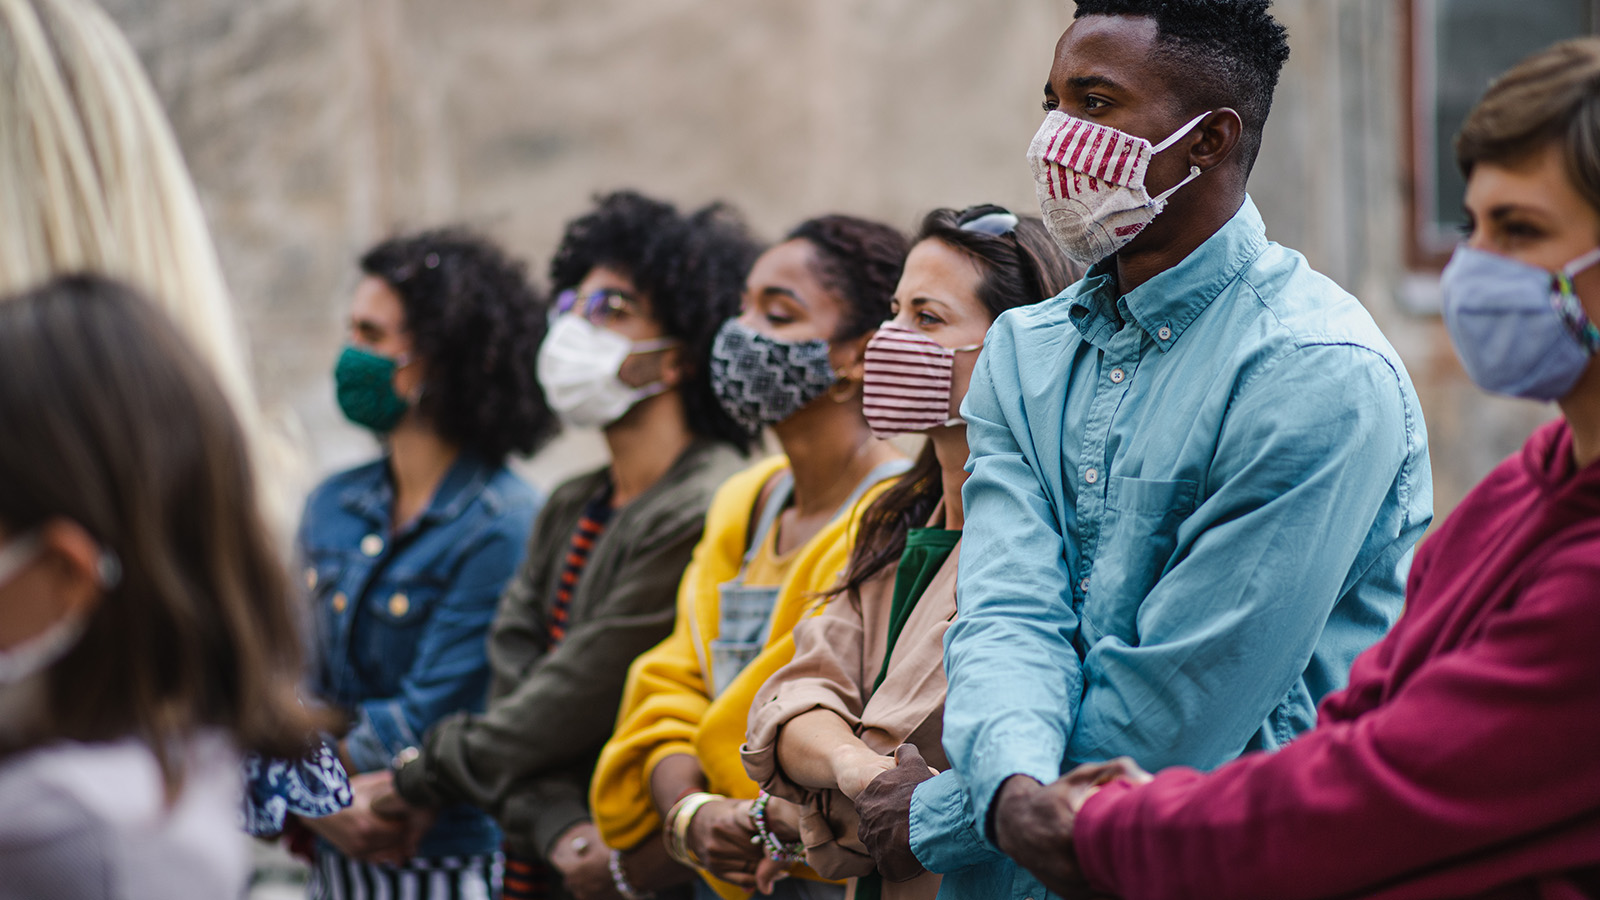 A diverse group of protestors link arms and wear masks to protect against COVID-19